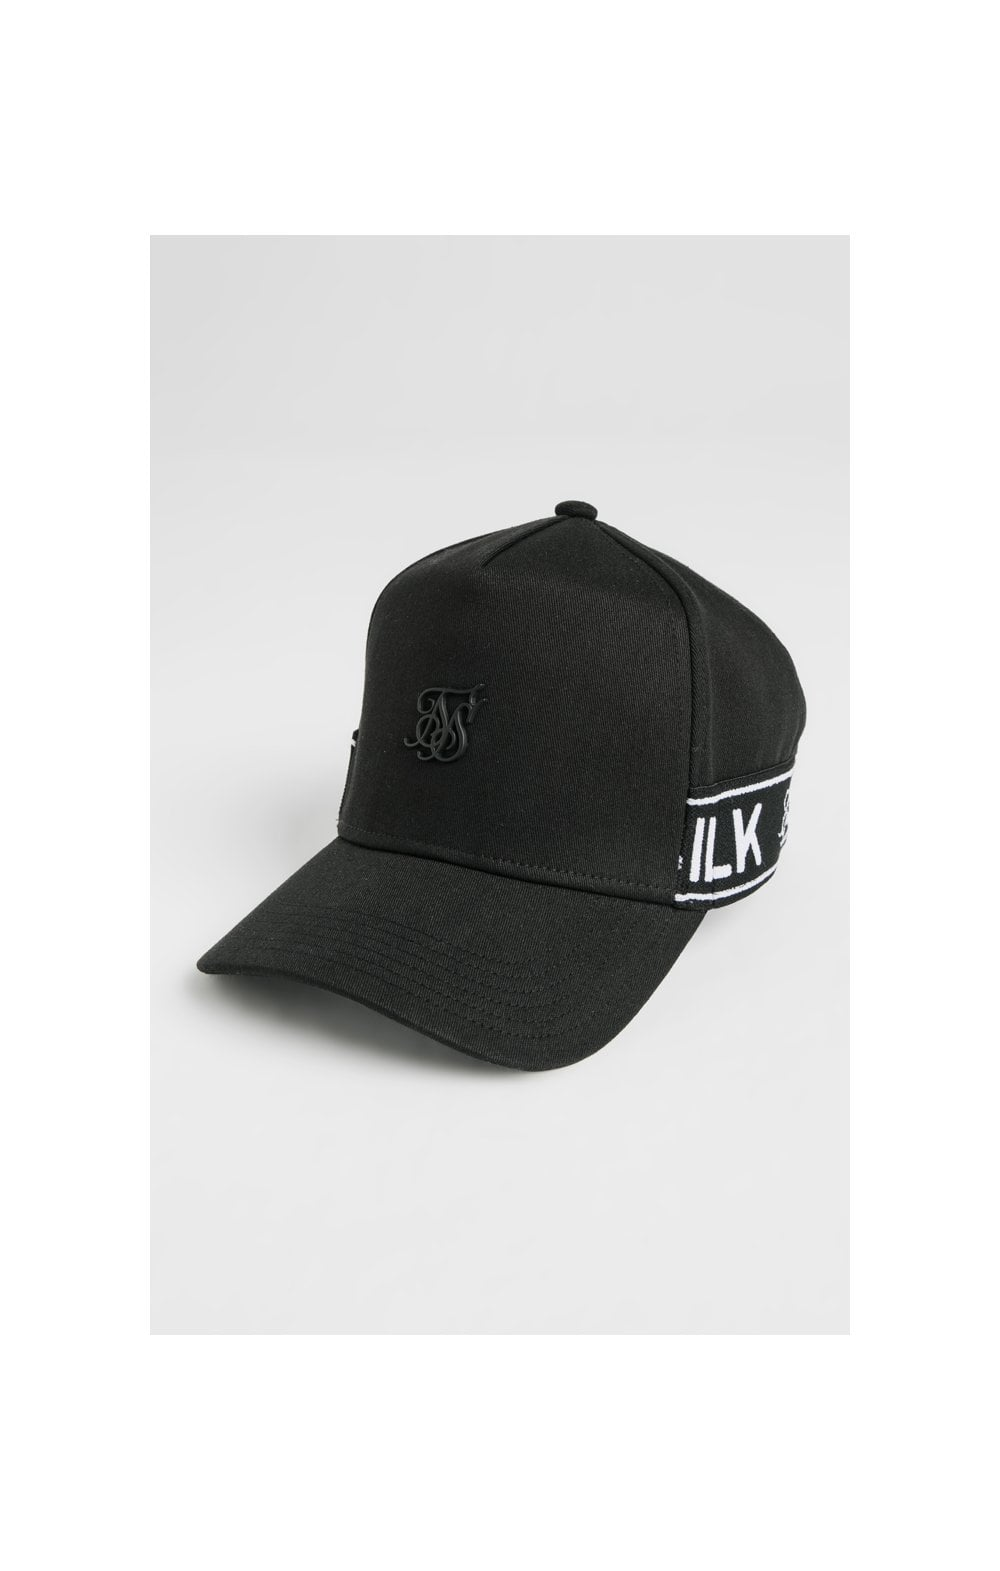 SikSilk Stretch Fit Full Trucker - Black